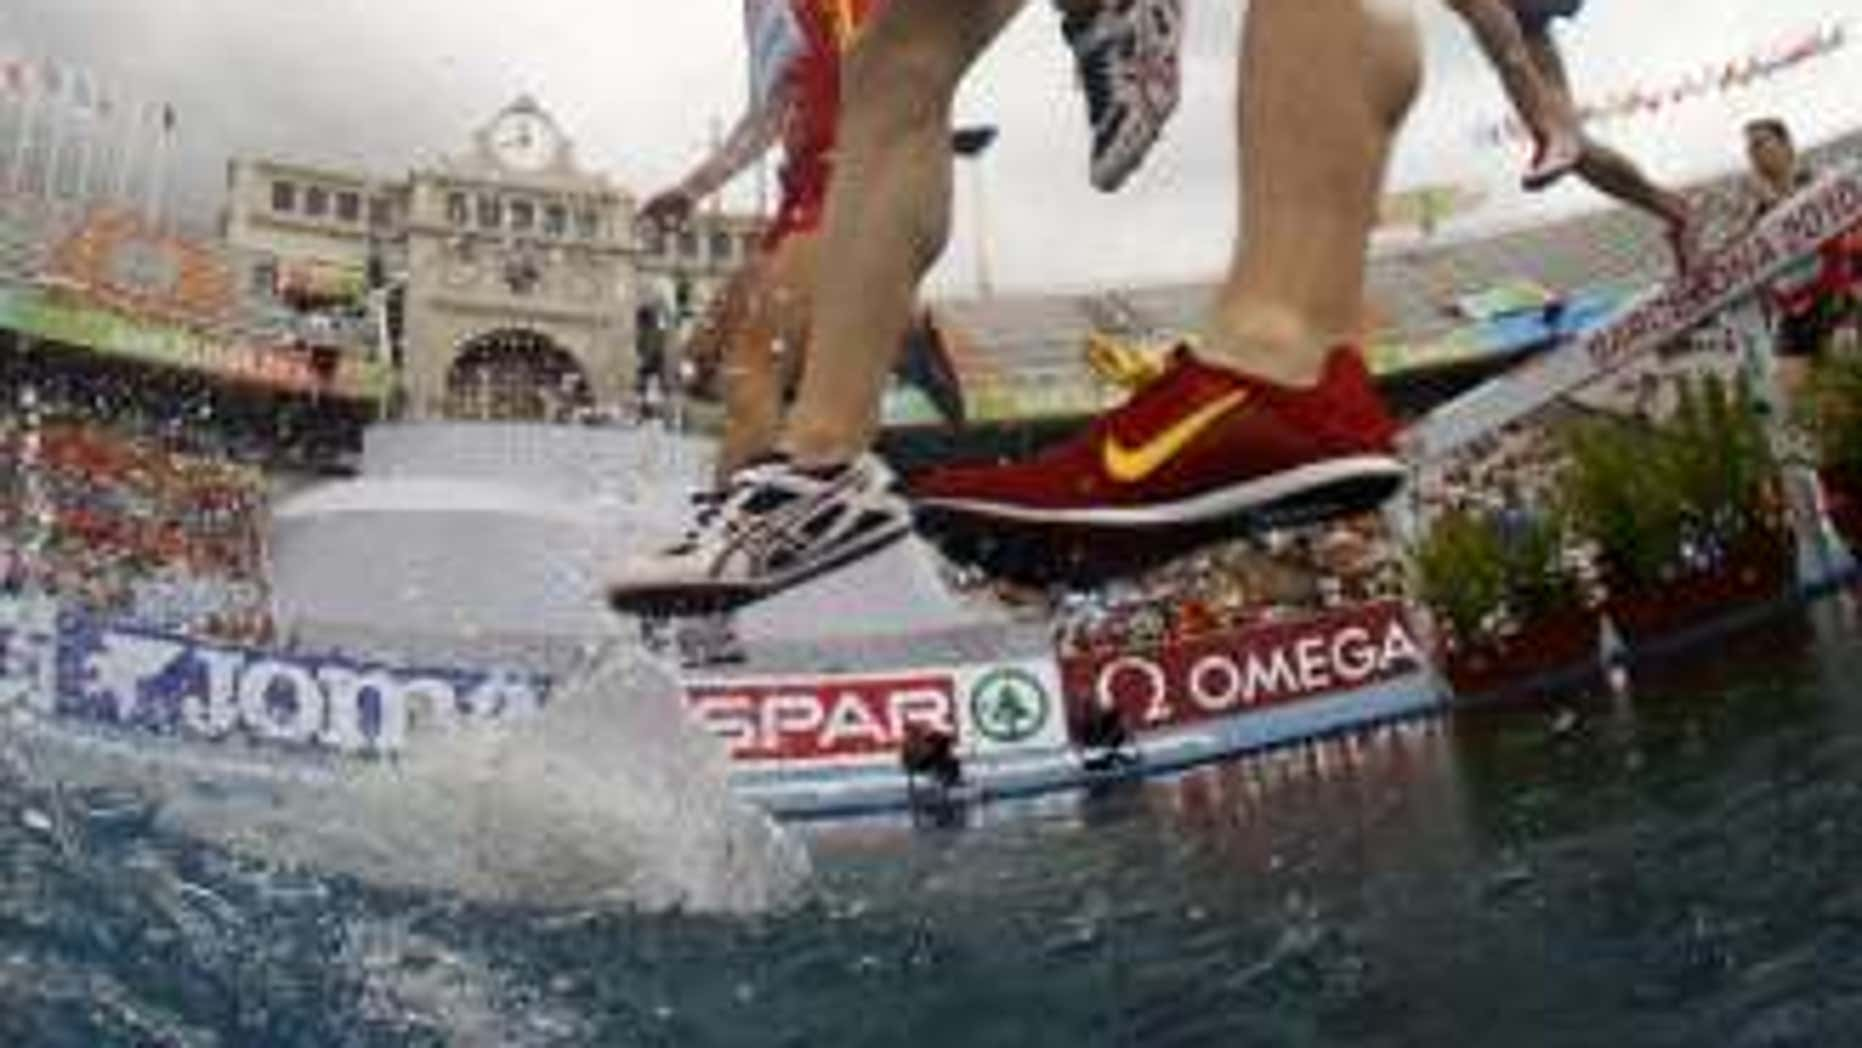 July 30, 2010: Angel Mullera of Spain and Hubert Pokrop of Poland jump a water obstacle in the men's 3000 metres steeplechase heats at the European Athletics Championships in Barcelona.